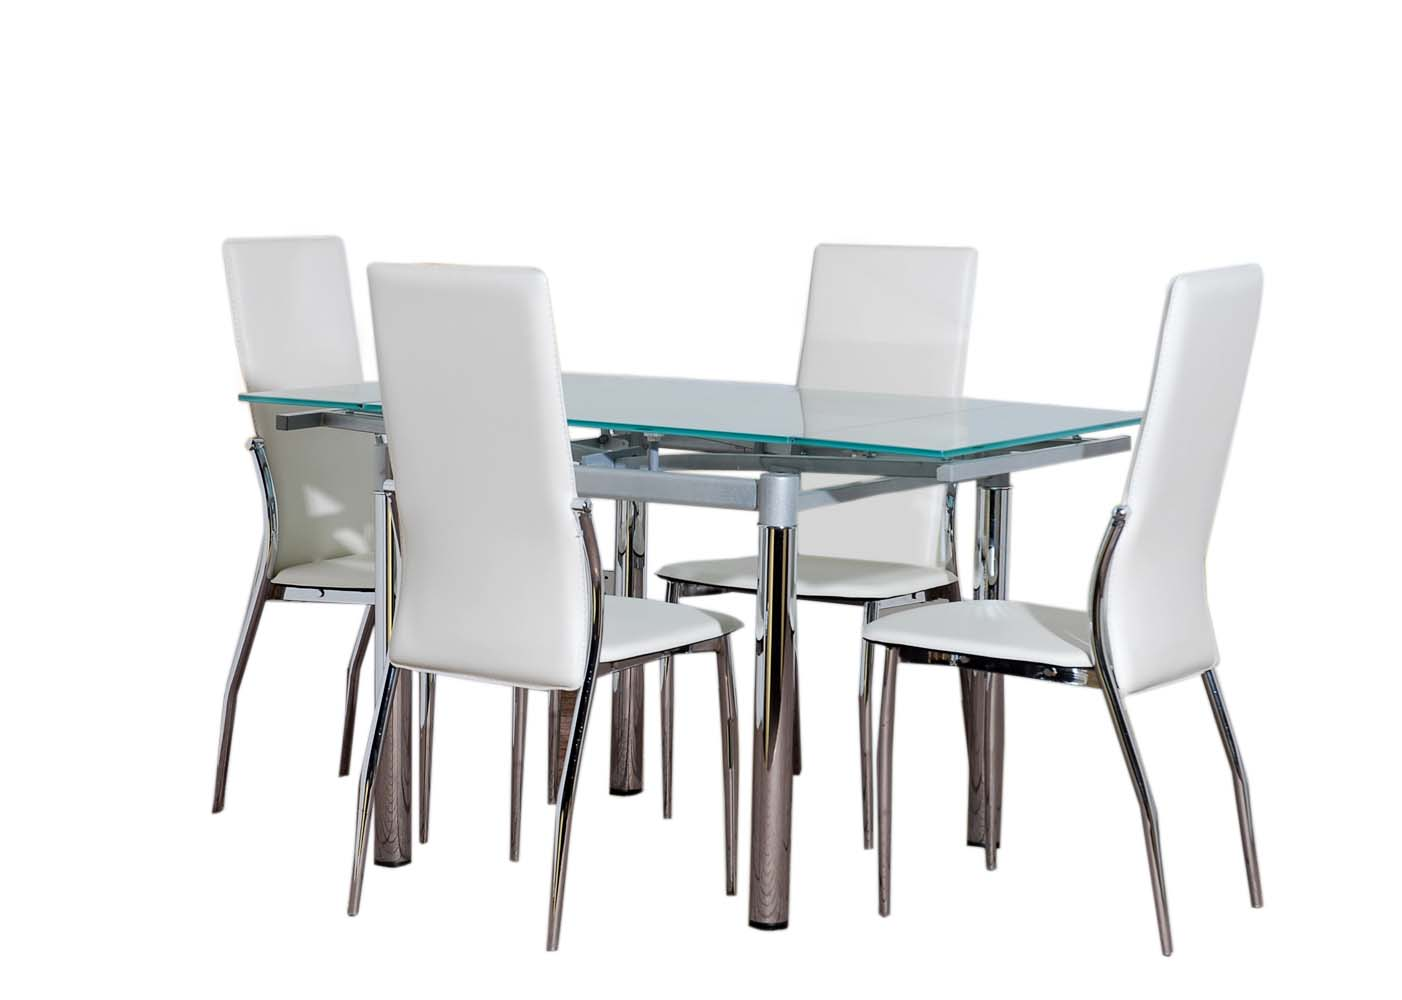 Glass dining table furniture and 4 cream chairs set ebay for Four chair dining table set